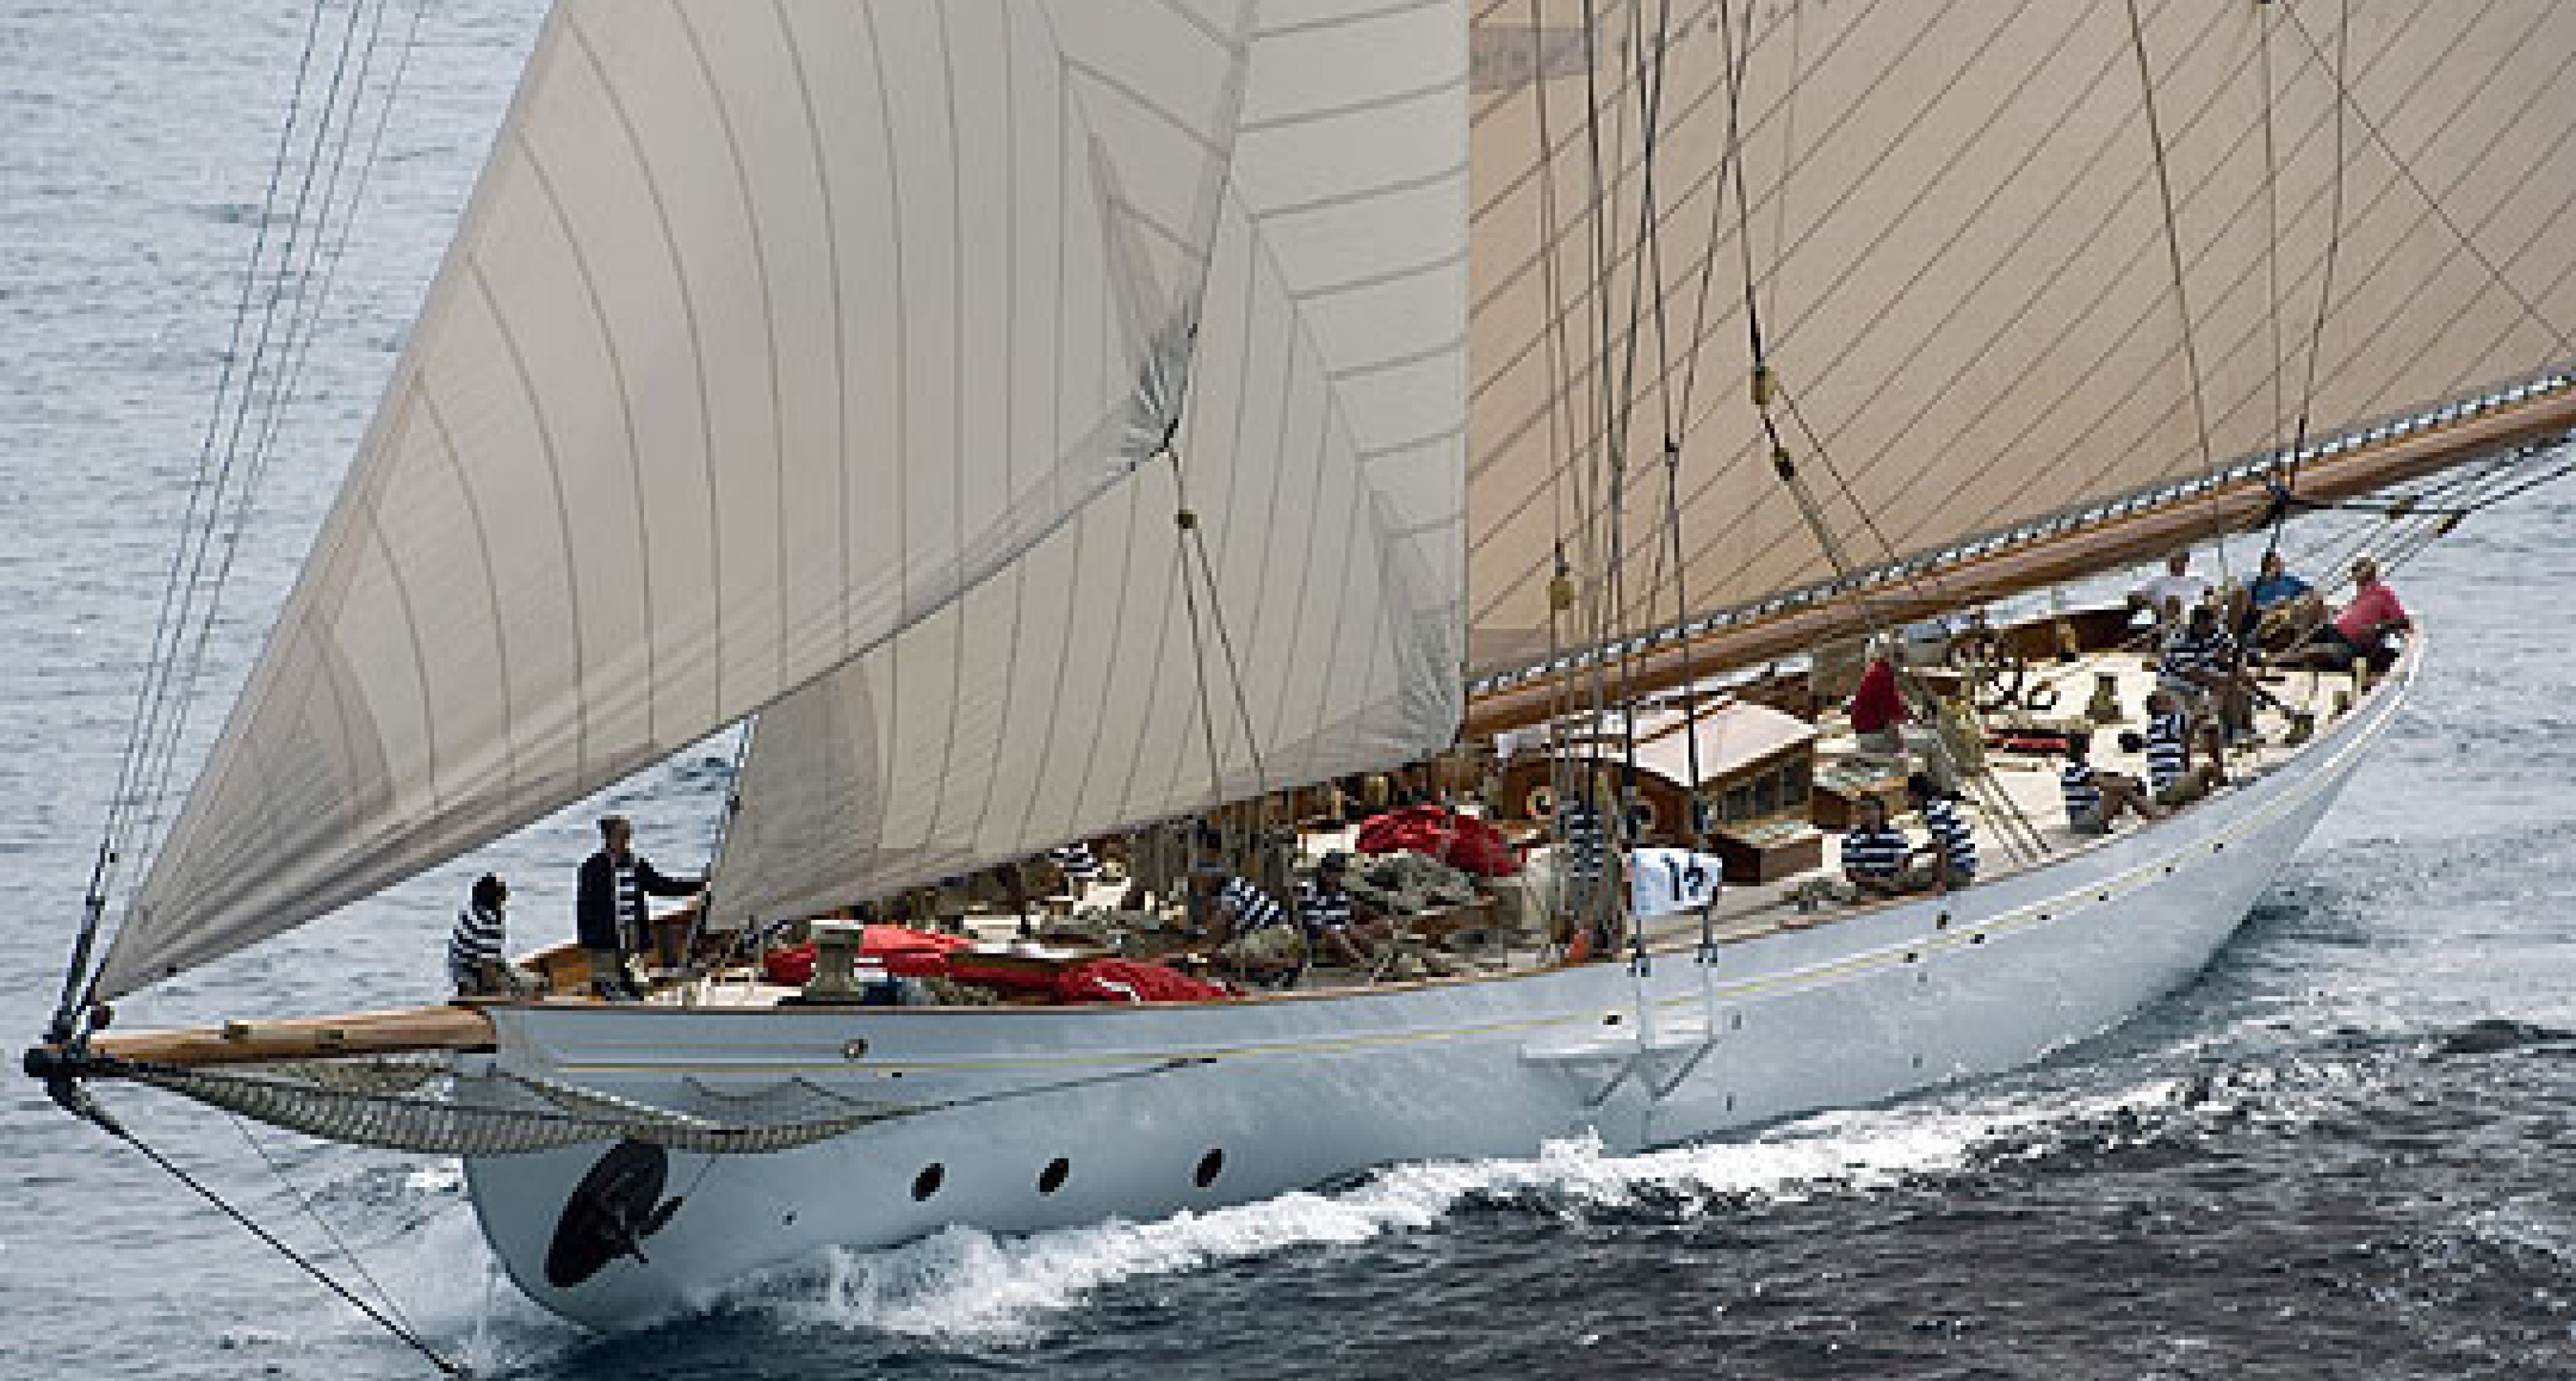 The Imperia Vintage Yachts Meeting